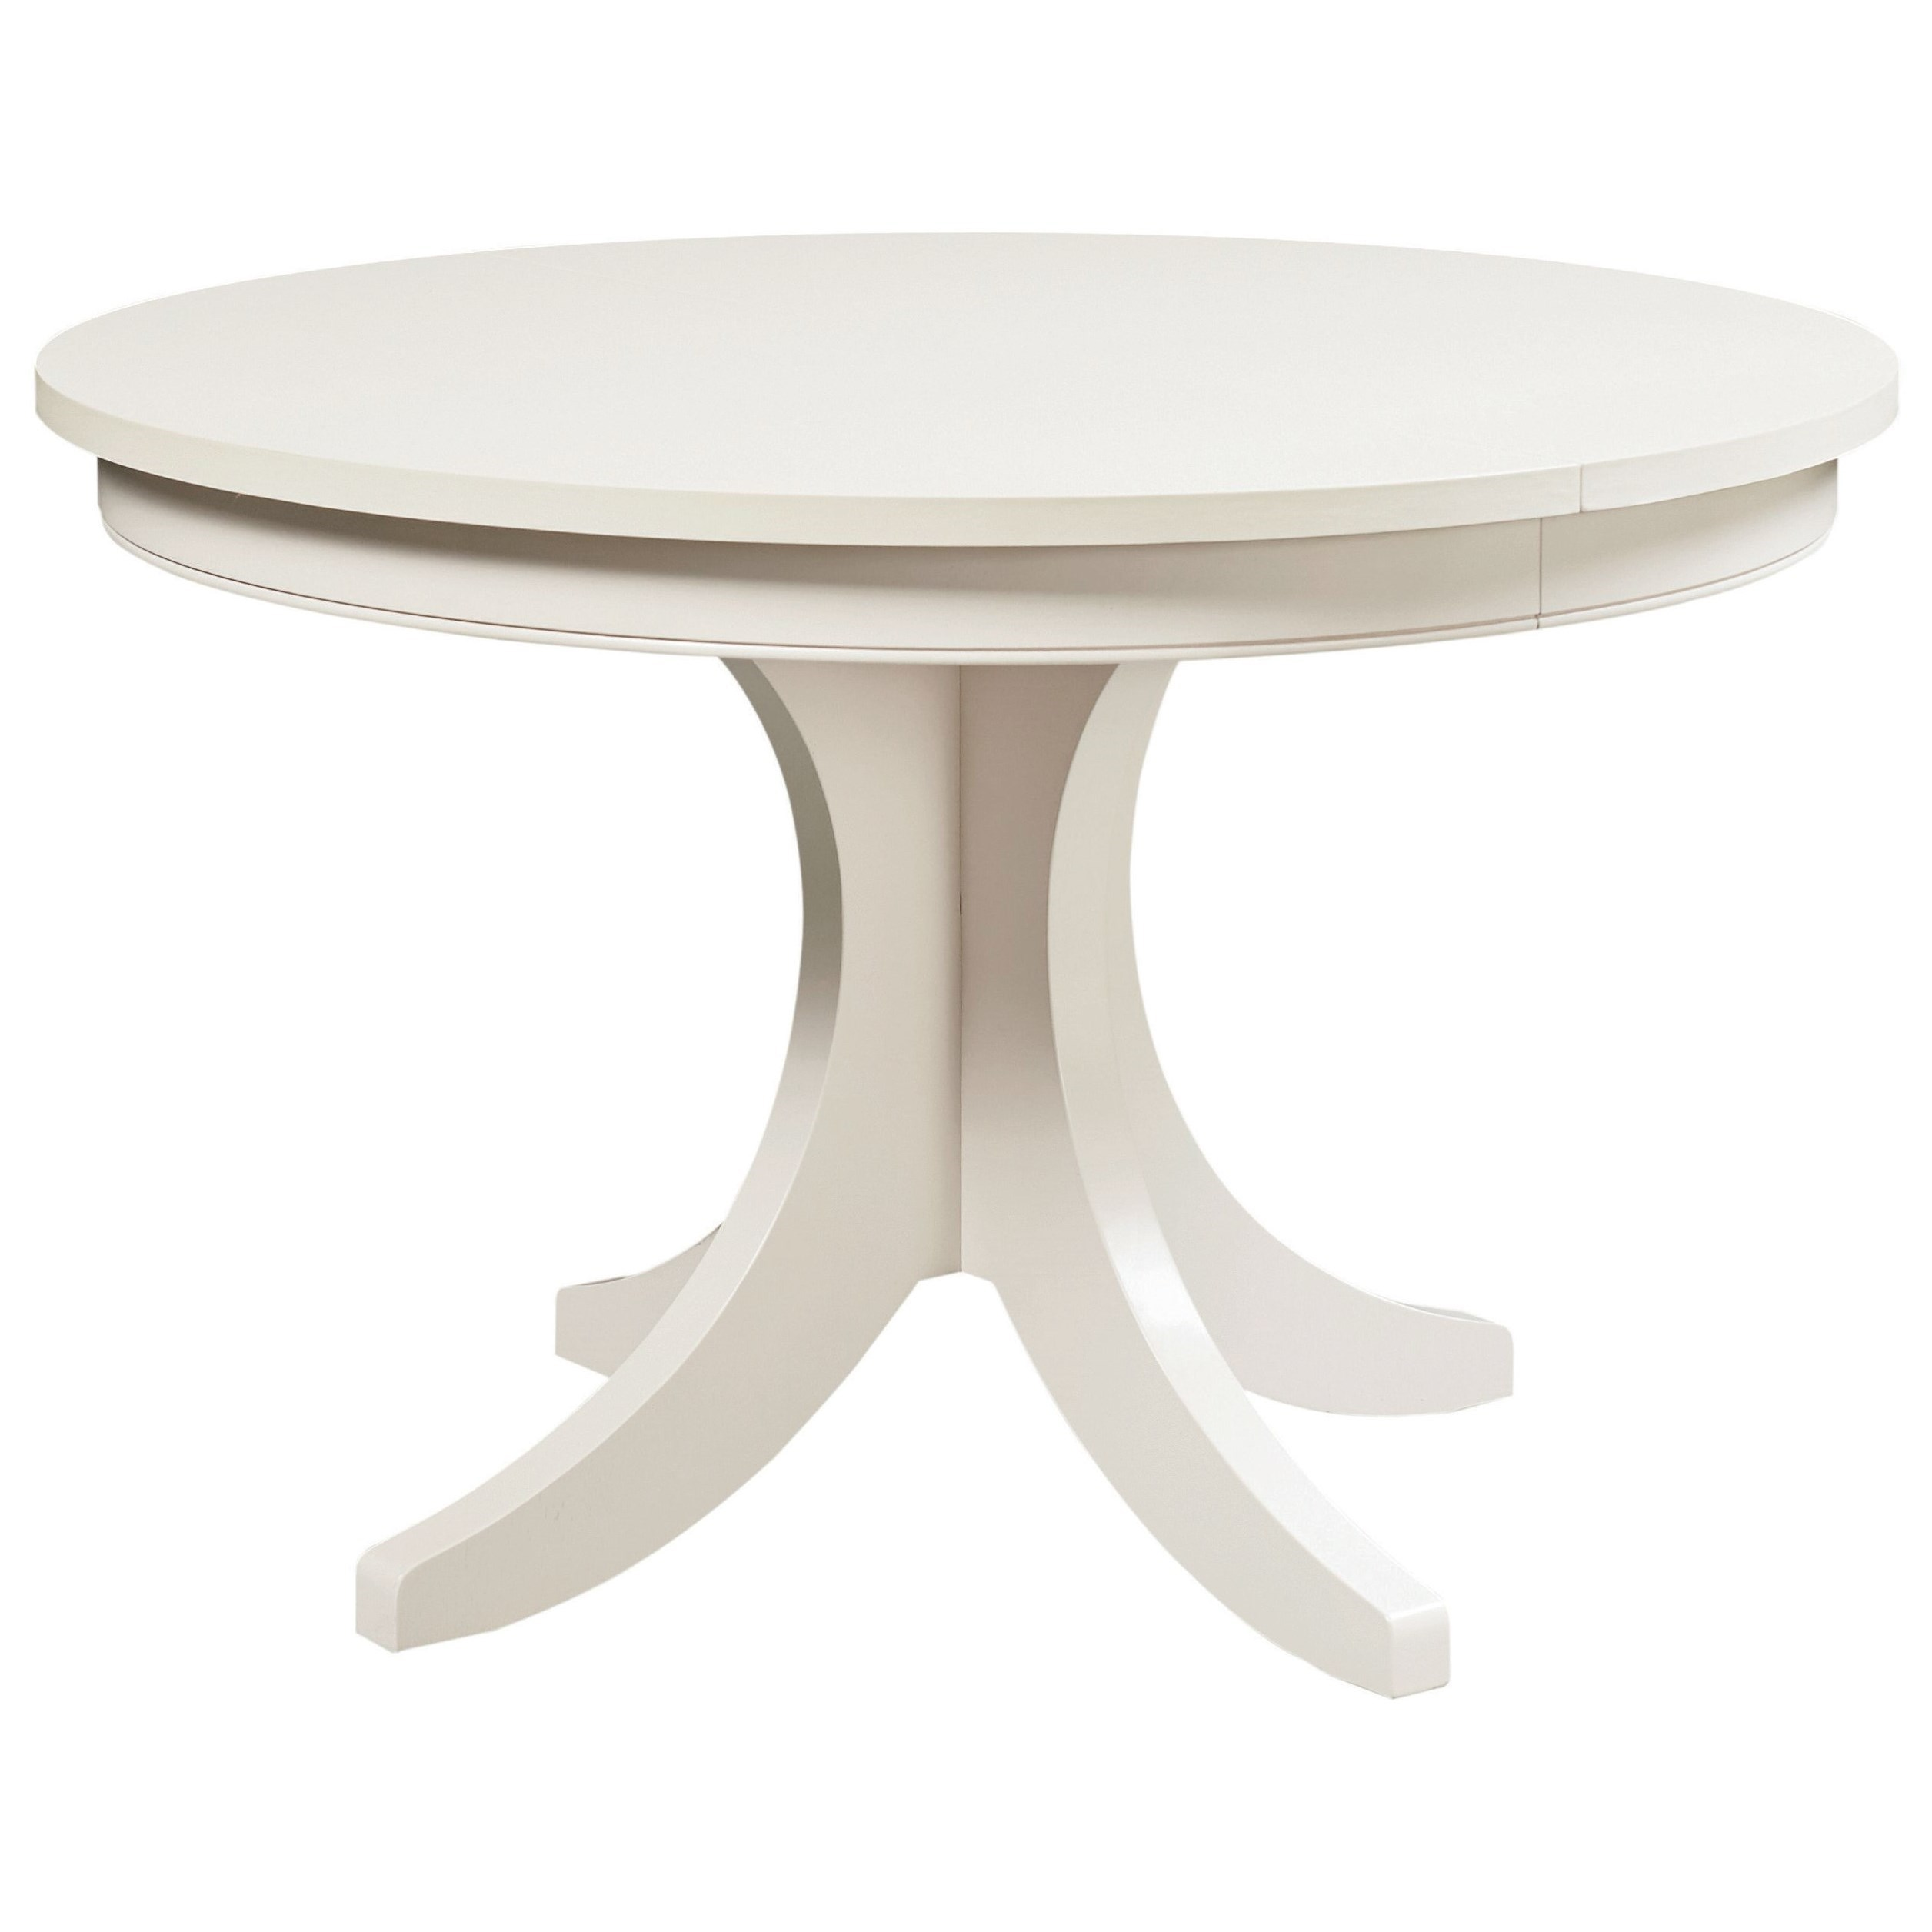 Custom Dining Customizable Round Pedestal Table by Bassett at VanDrie Home Furnishings